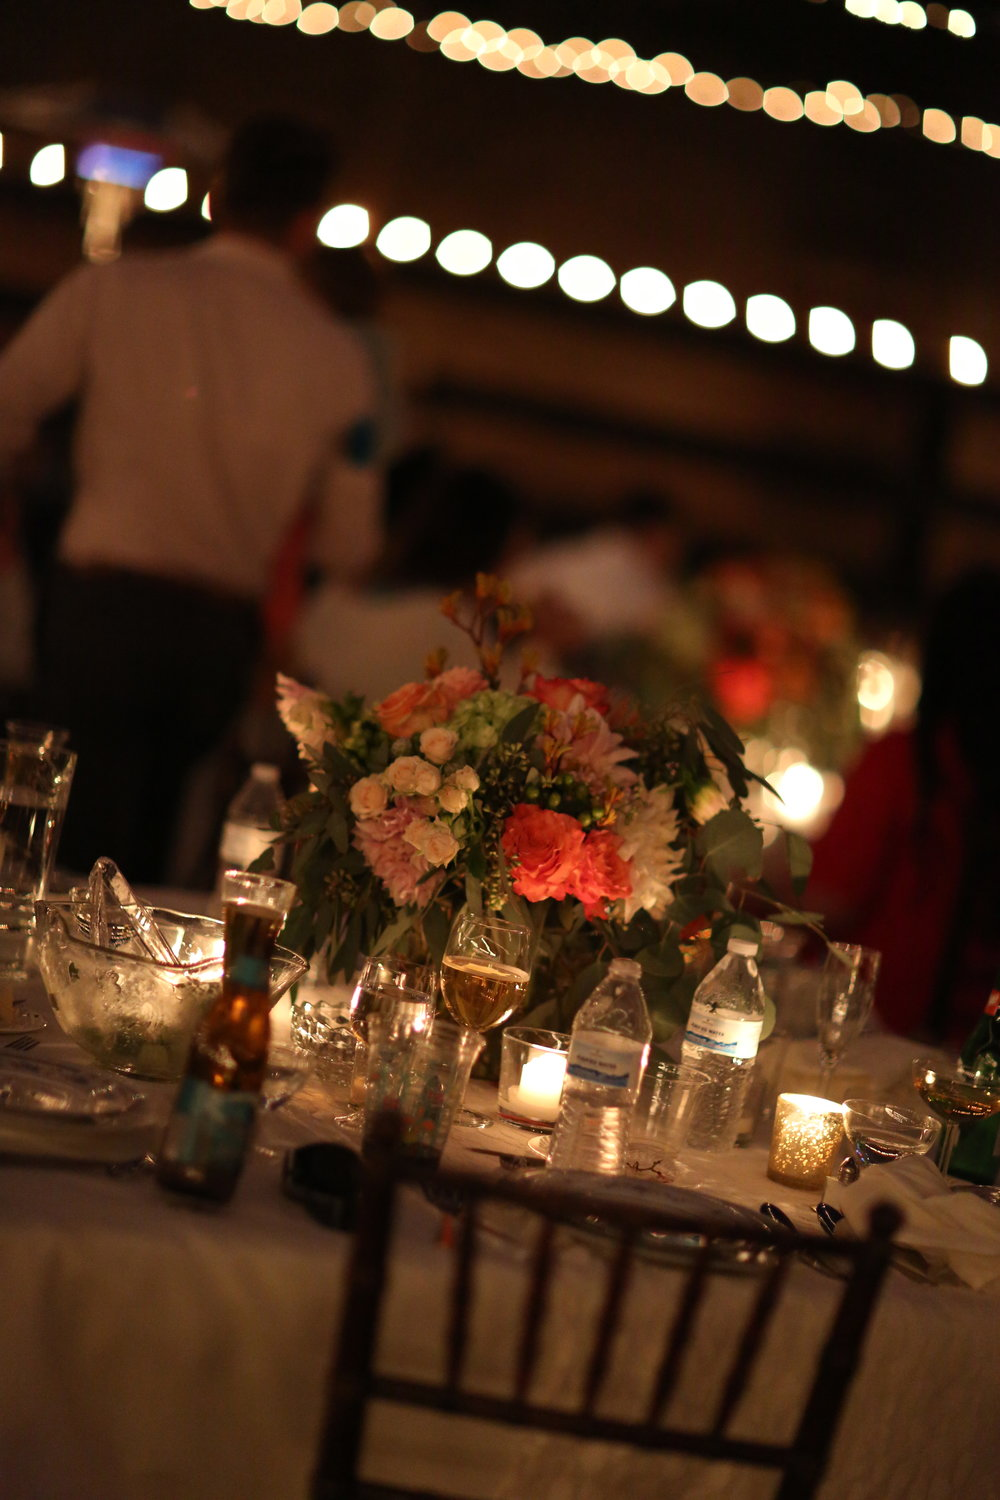 Wedding flowers and candlelight